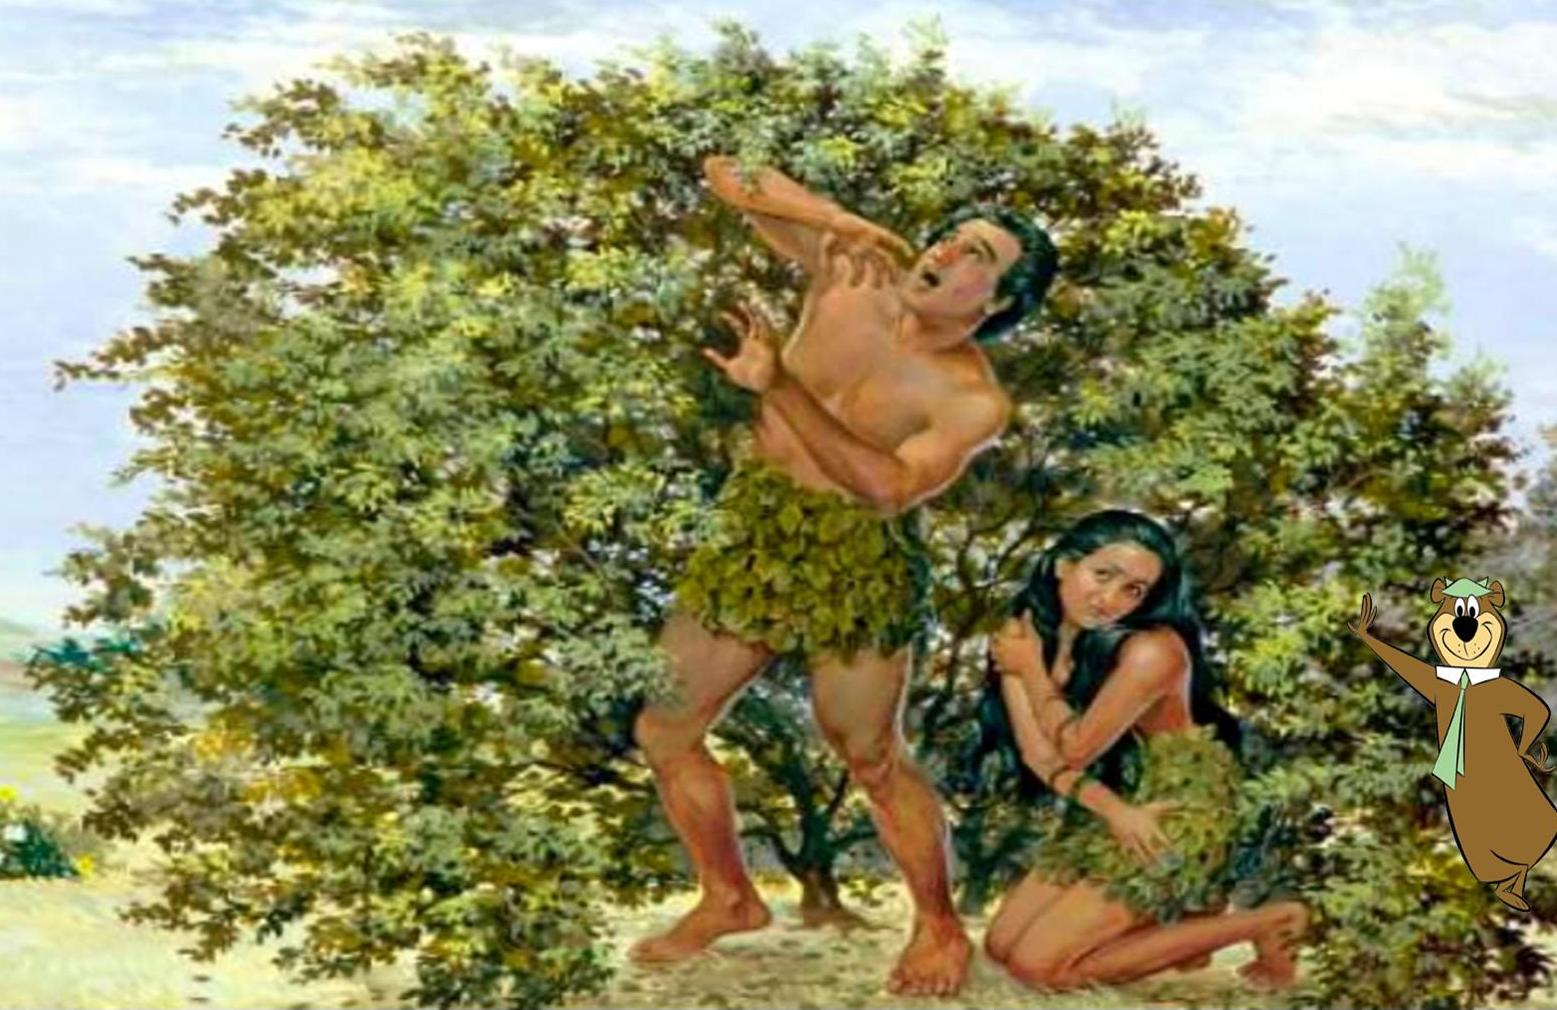 Adam and eve a sex parody